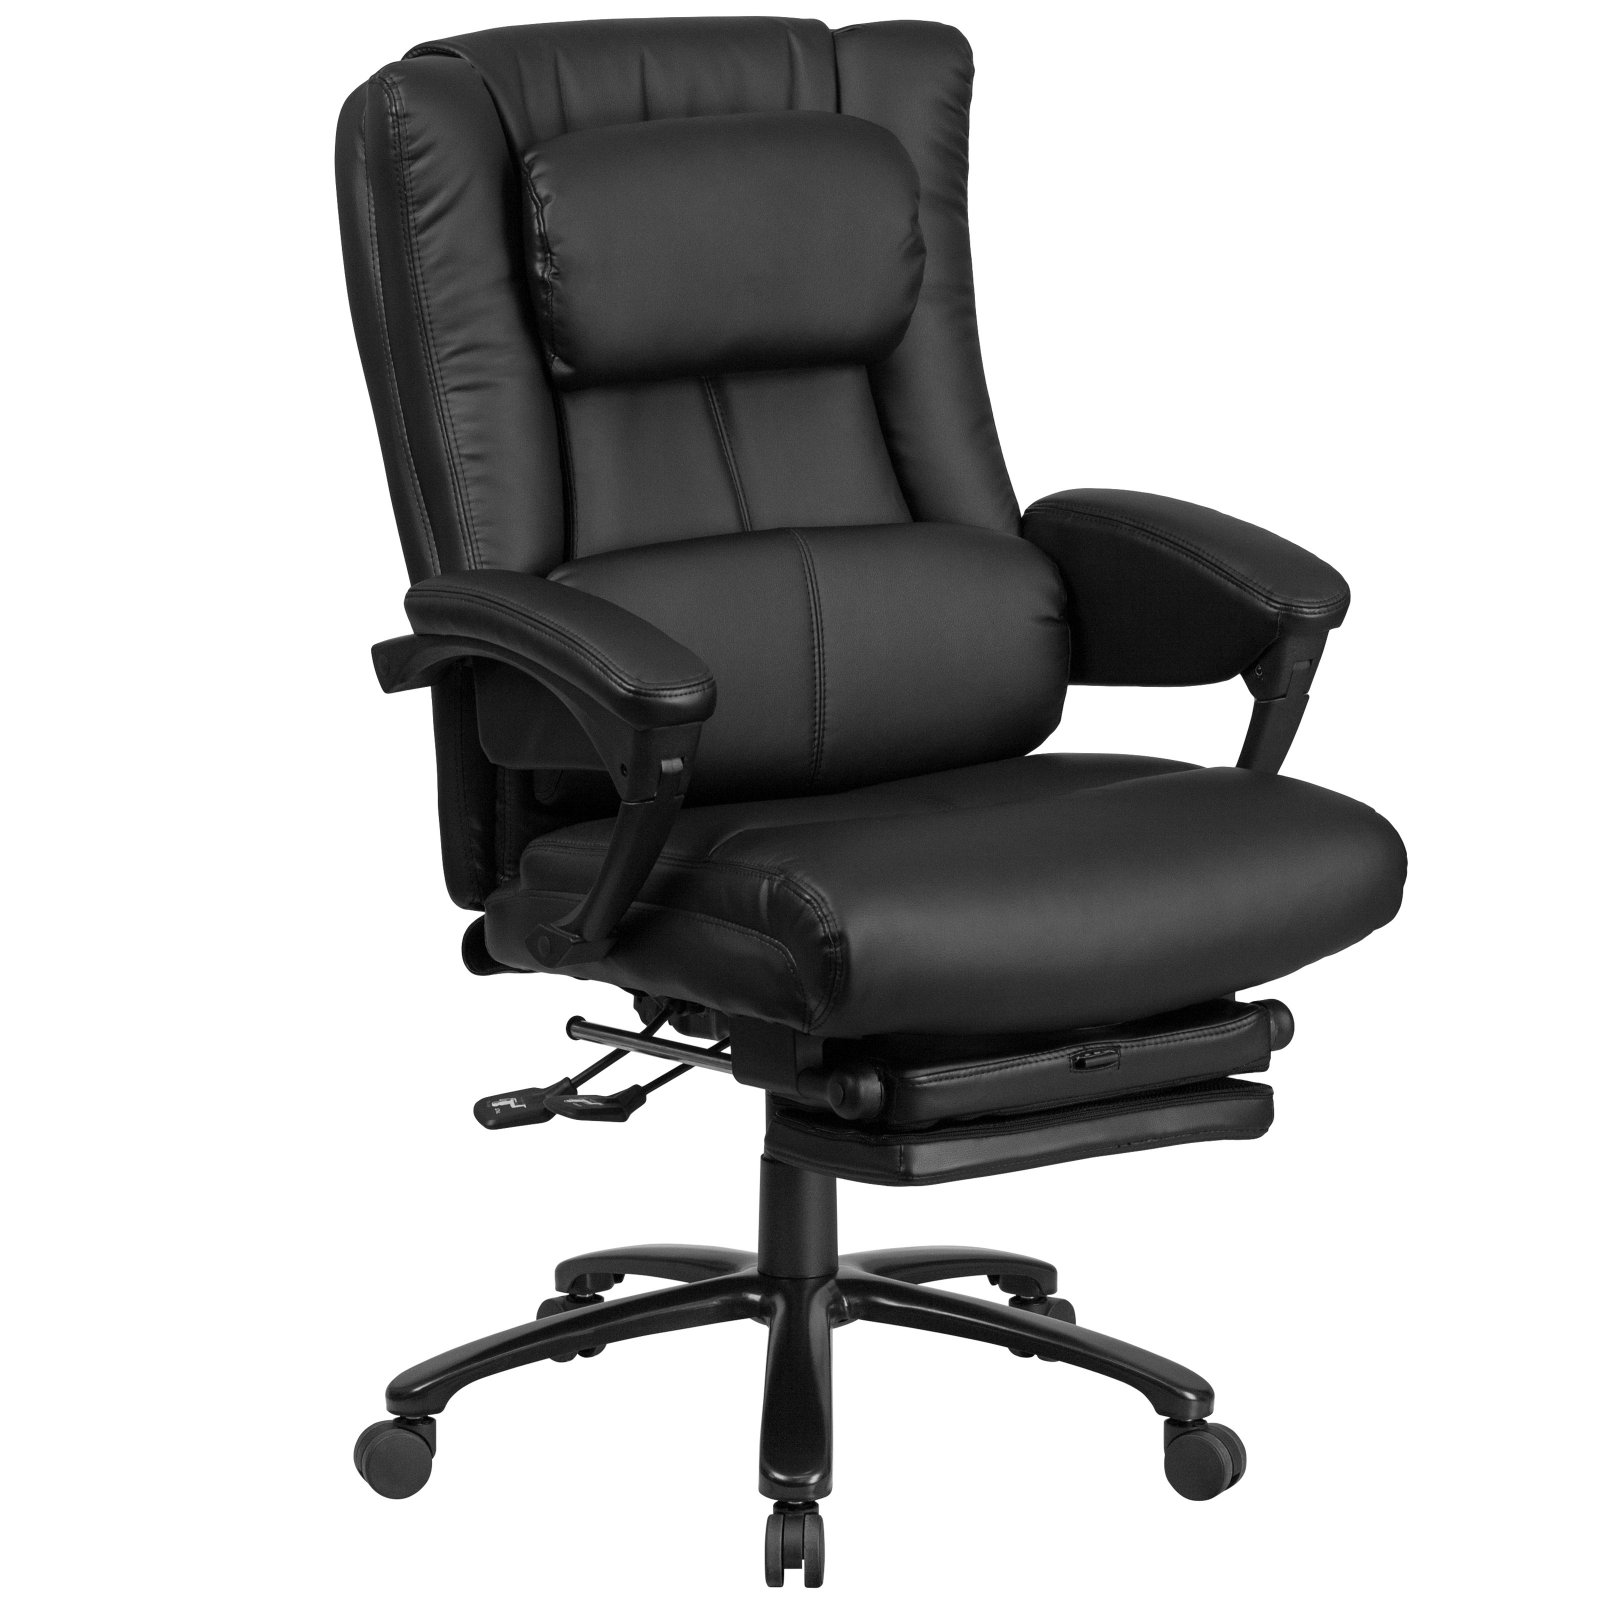 black leather office chair high back ikea spinning flash furniture executive reclining swivel with lumbar support comfort coil seat springs and padded armrests